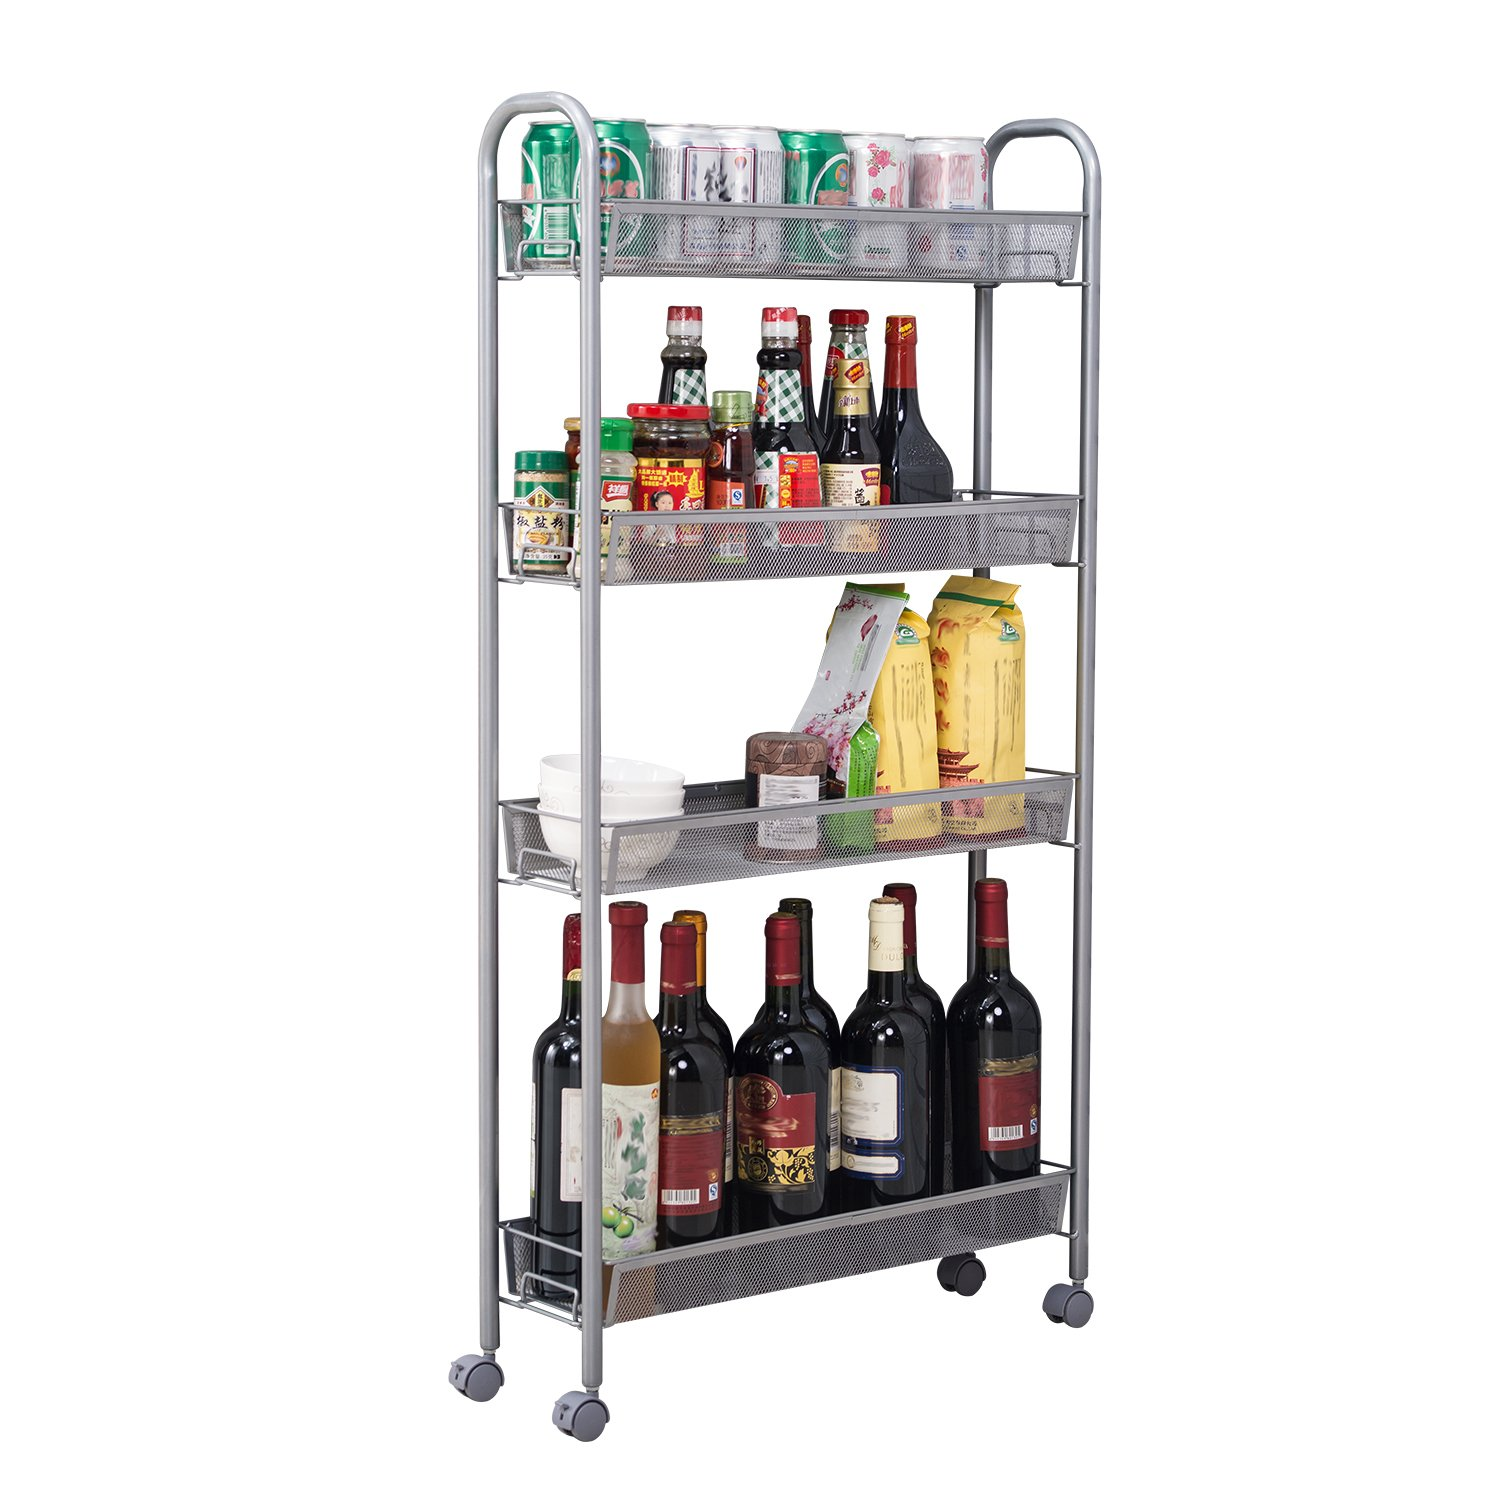 HOMFA 4-Tier Gap Kitchen Slim Slide Out Storage Tower Rack with Wheels, Cupboard with Casters - Silver by Homfa